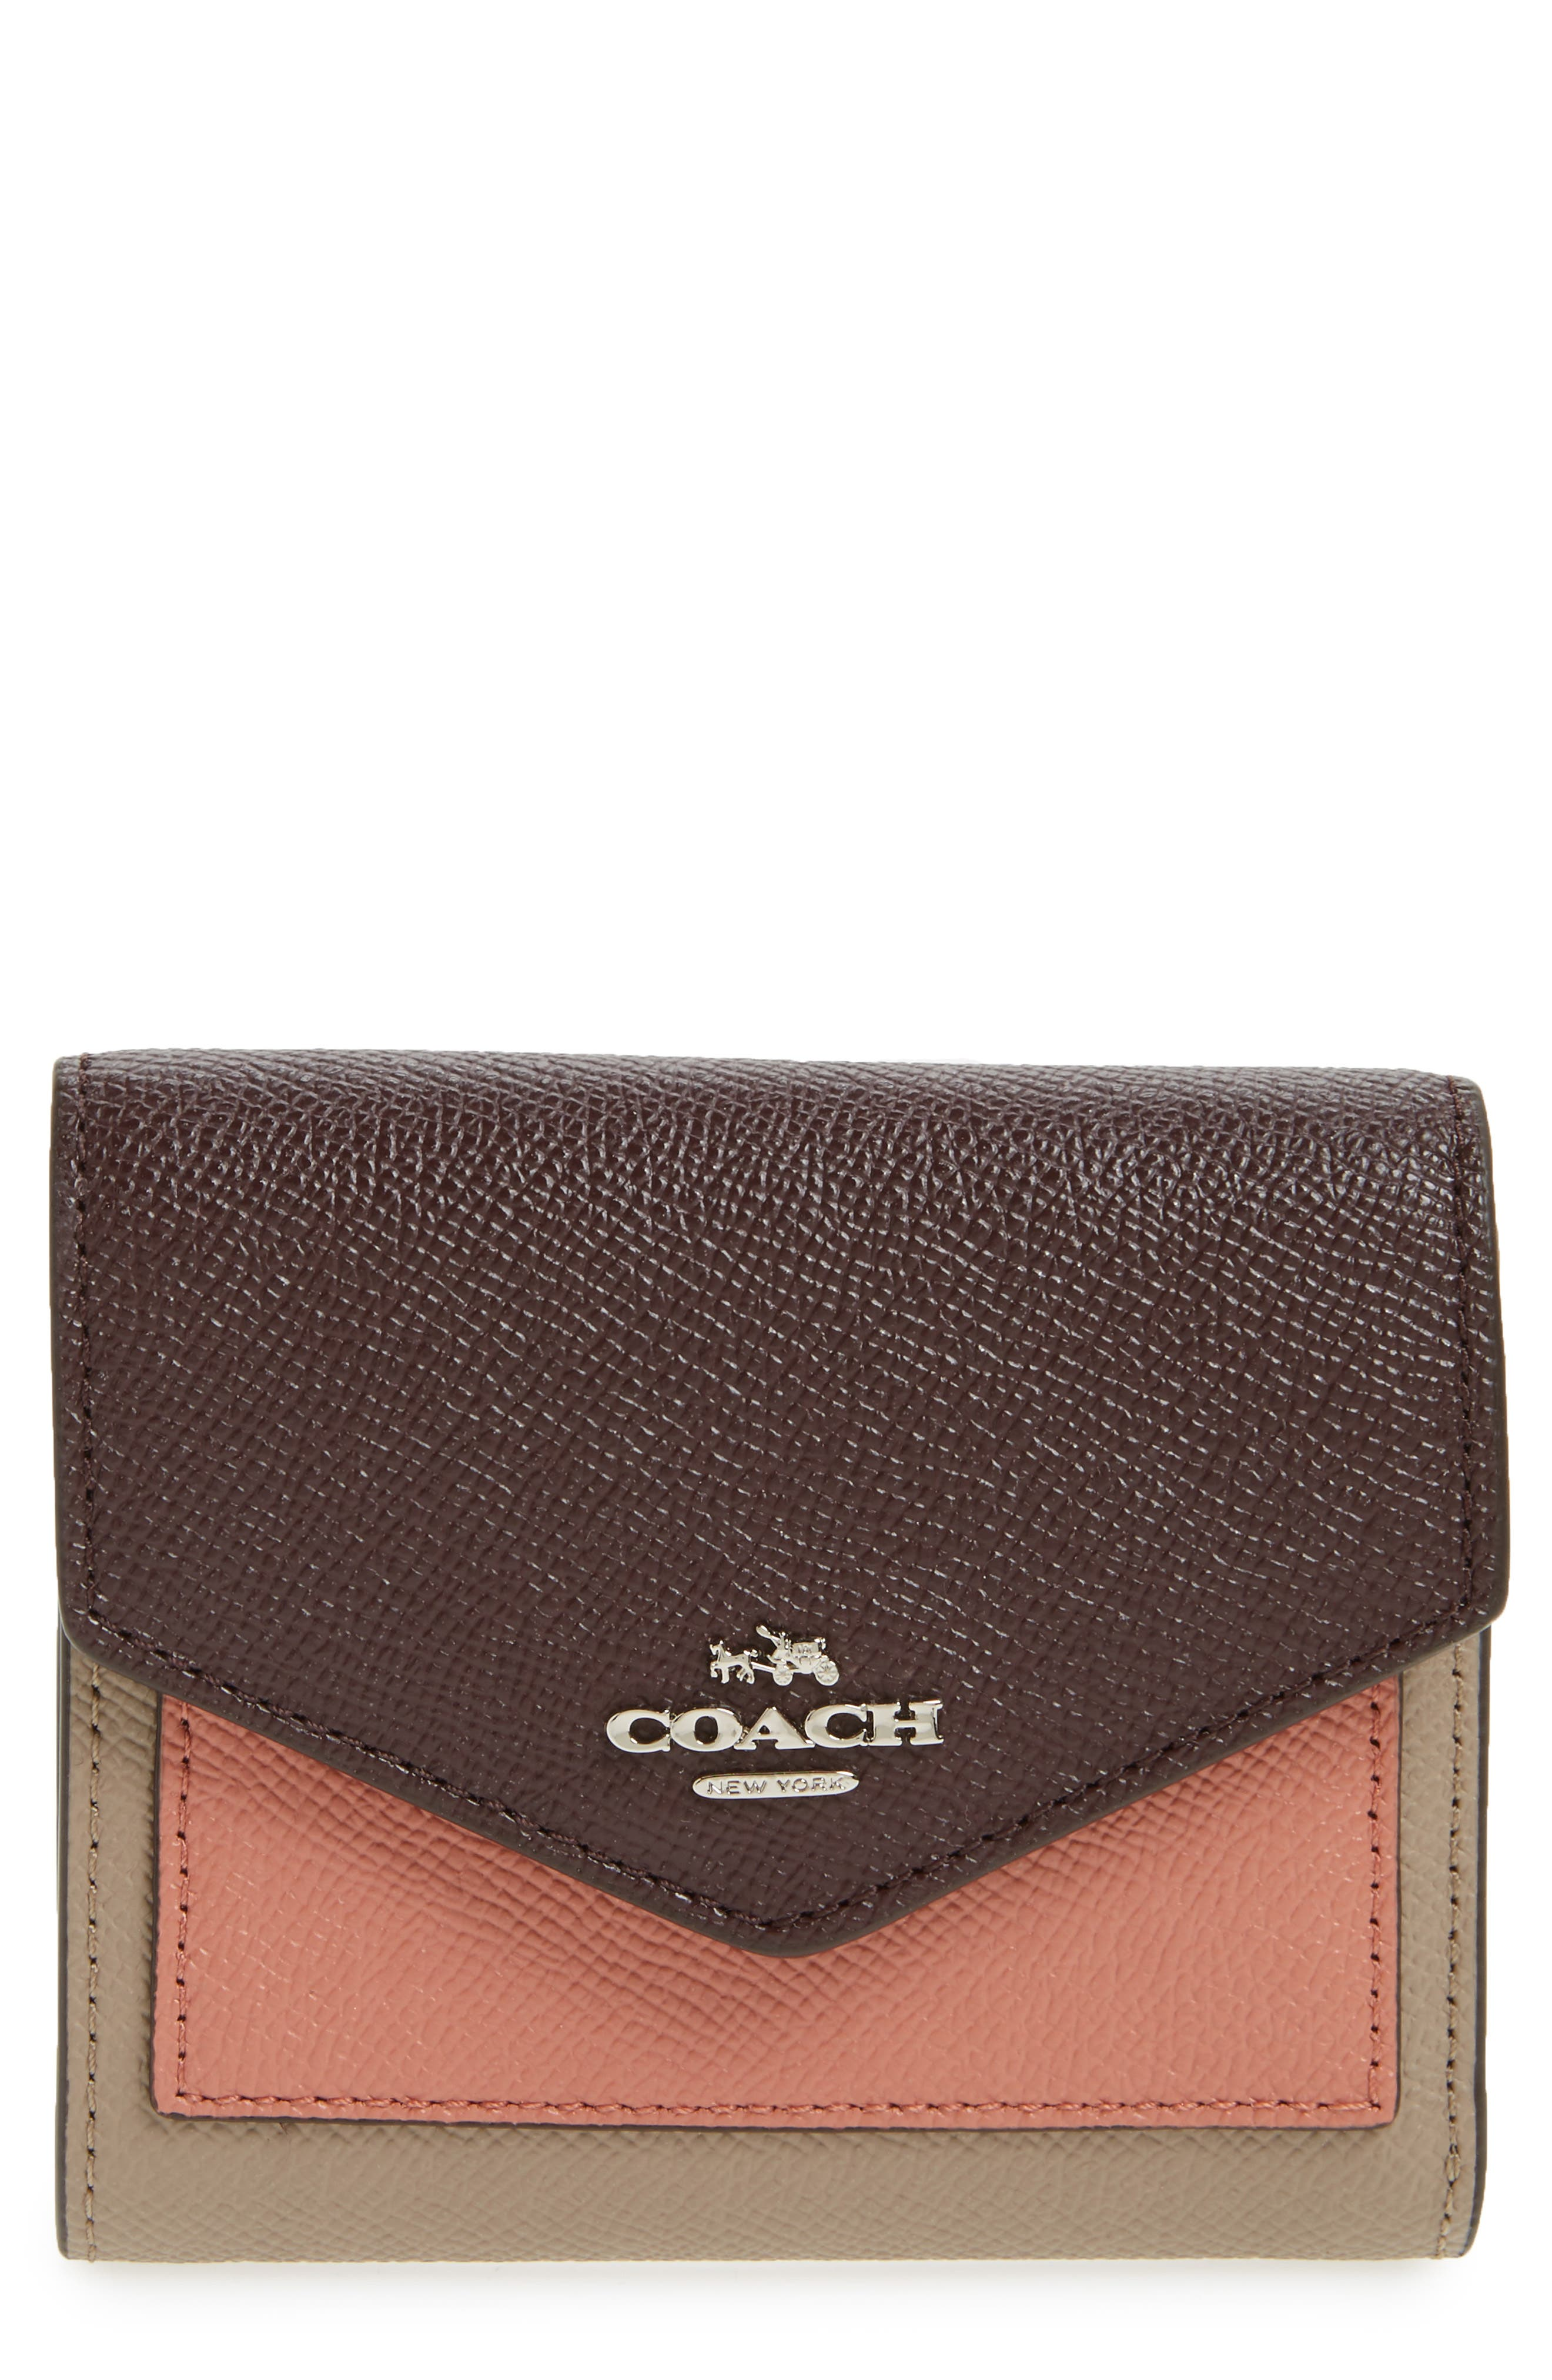 Small Colorblock Calfskin Leather Wallet,                         Main,                         color, 029